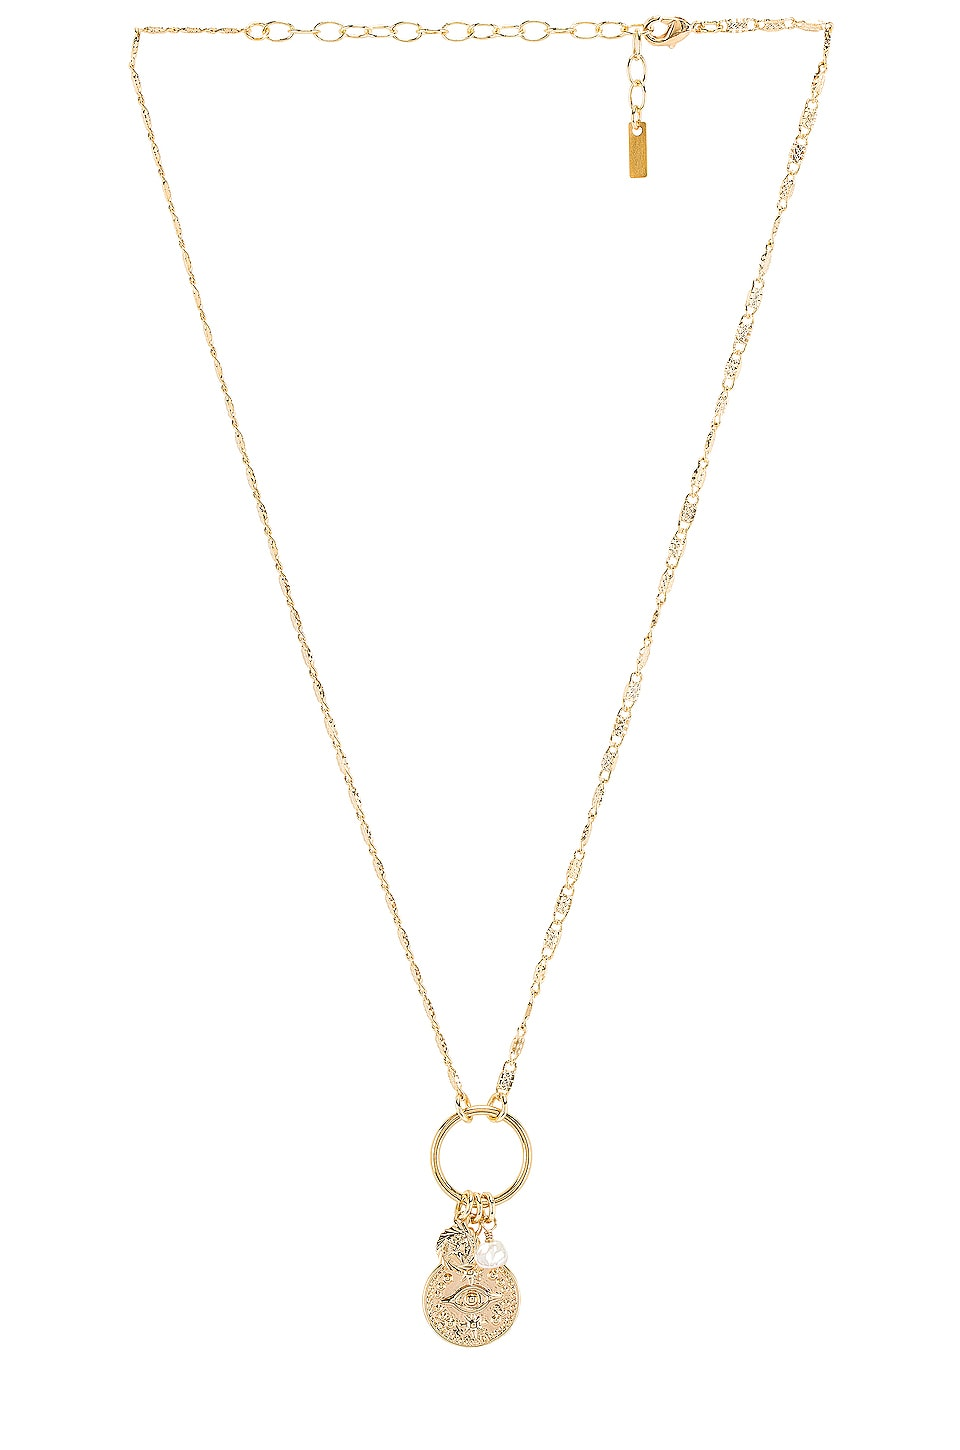 Natalie B Jewelry Good Fortune Necklace in Gold